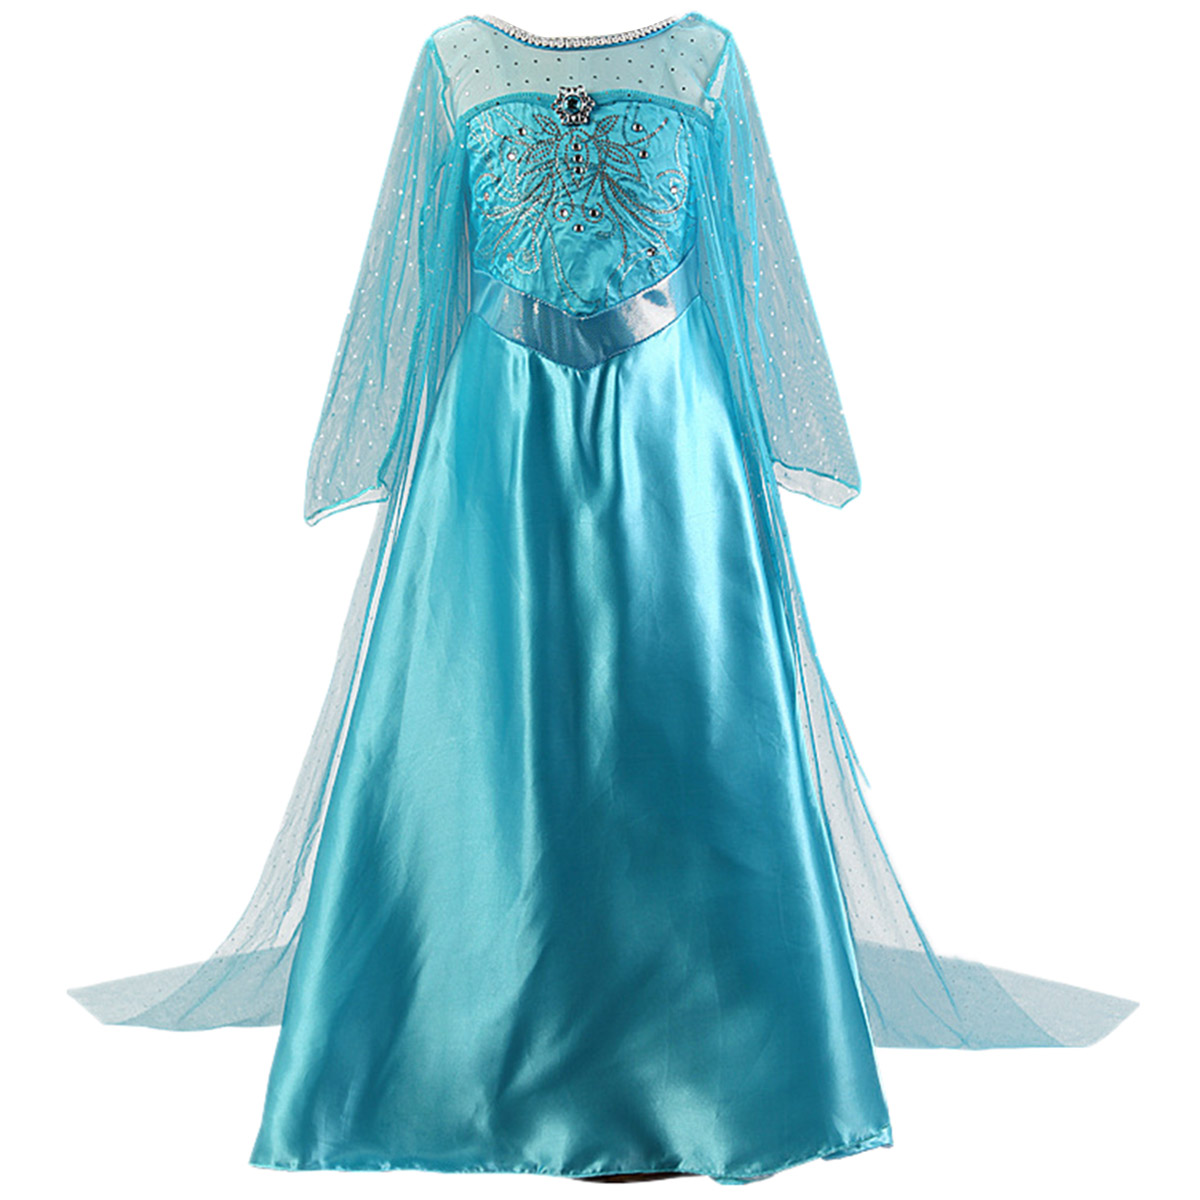 NEW Gorgeous Frozen Queen Elsa Princess Dress Up Cosplay Costume Party USA O99